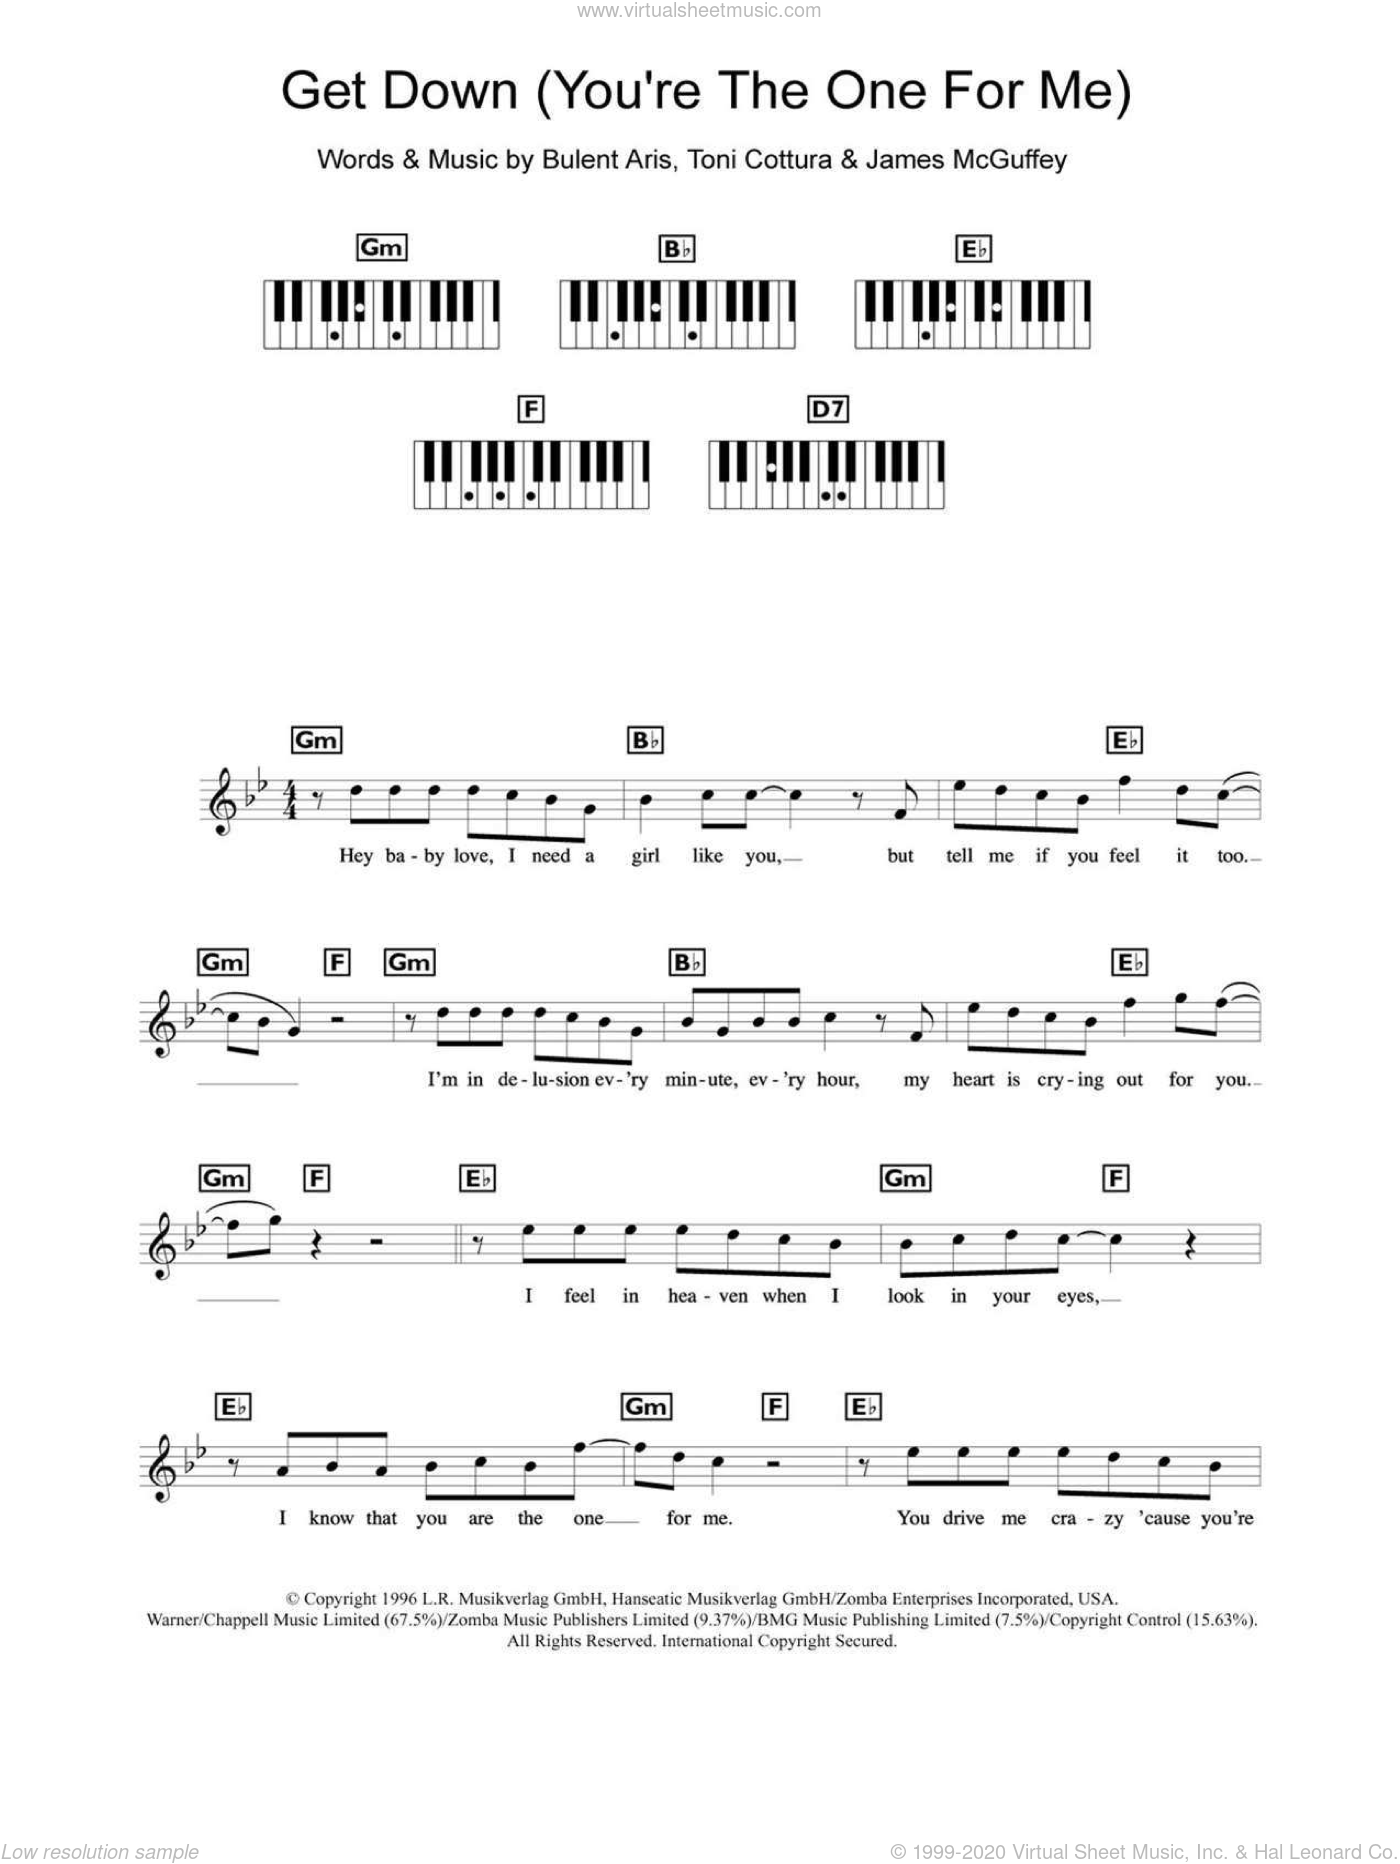 Get Down (You're The One For Me) sheet music for piano solo (chords, lyrics, melody) by Toni Cottura